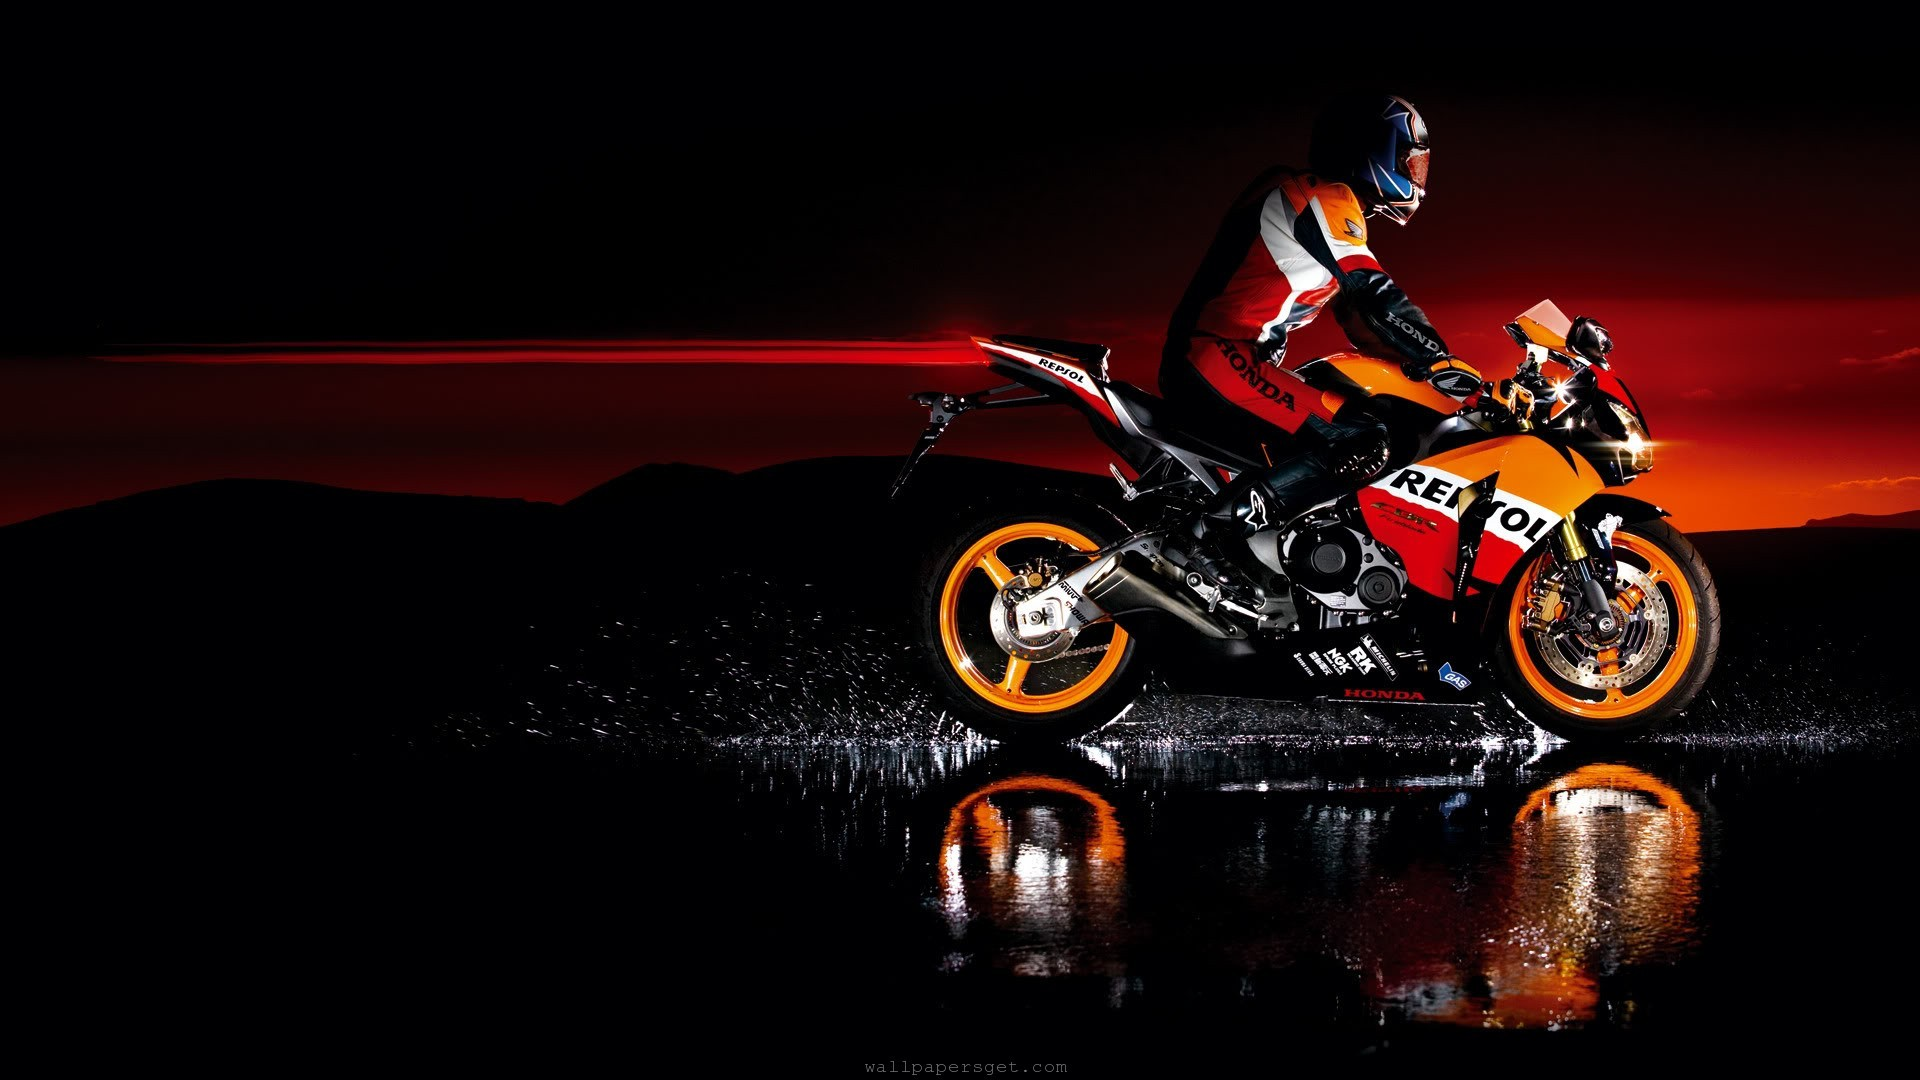 Honda Motorcycle Wallpapers 6763 Hd Wallpapers in Bikes   Imagescicom 1920x1080